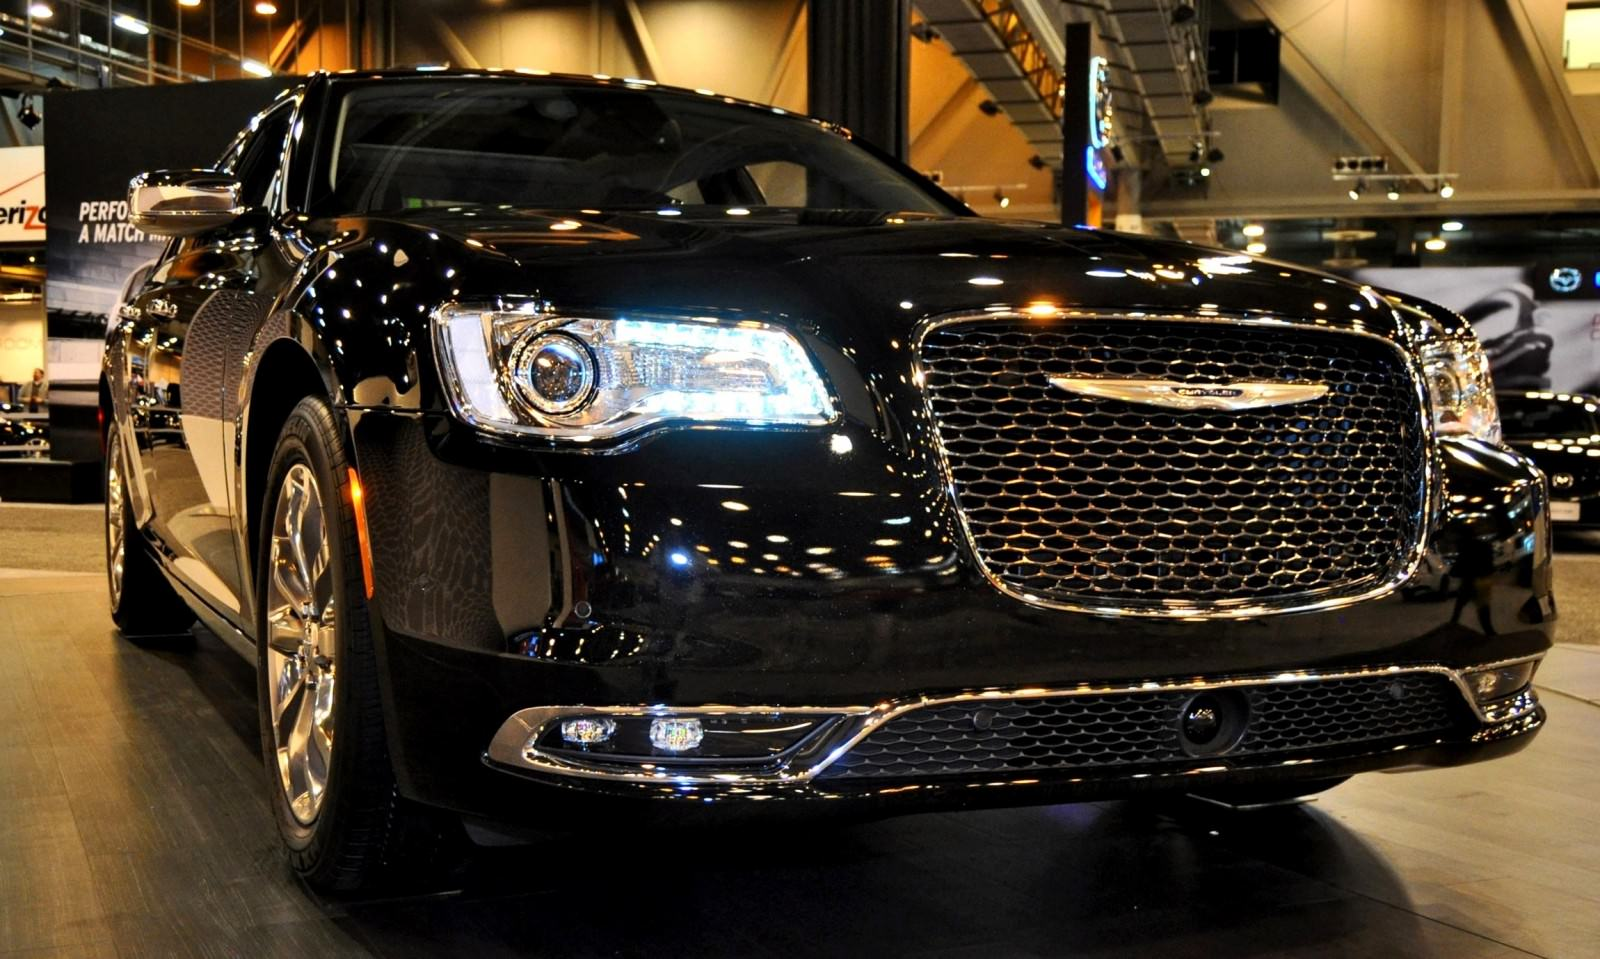 2015 Chrysler 300C - Houston Auto Show Gallery 11